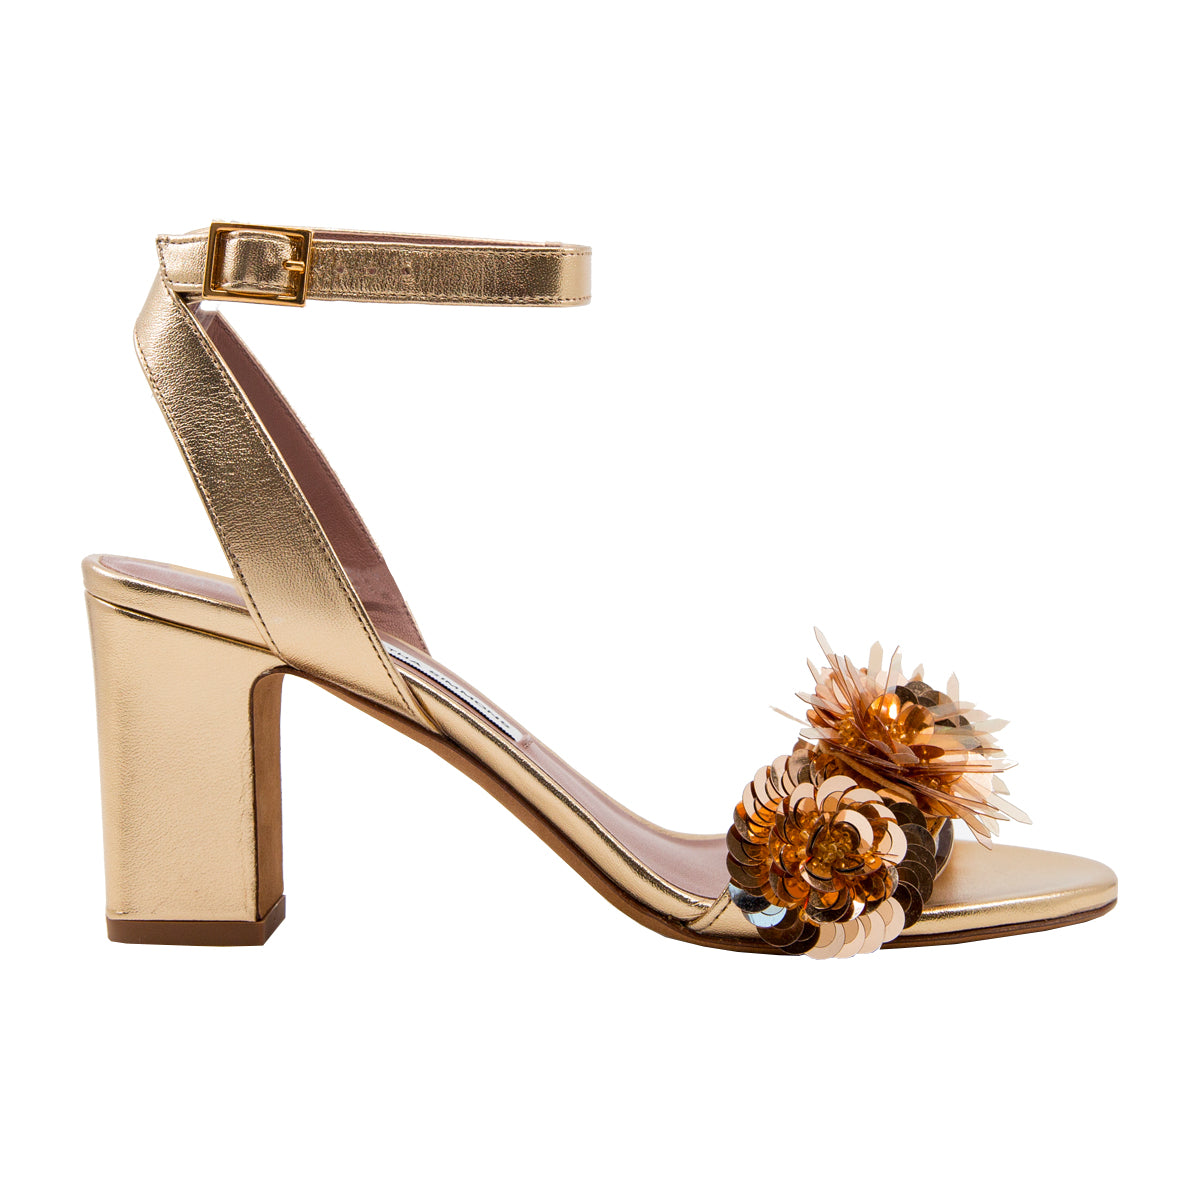 Lilian embellished metallic sandals